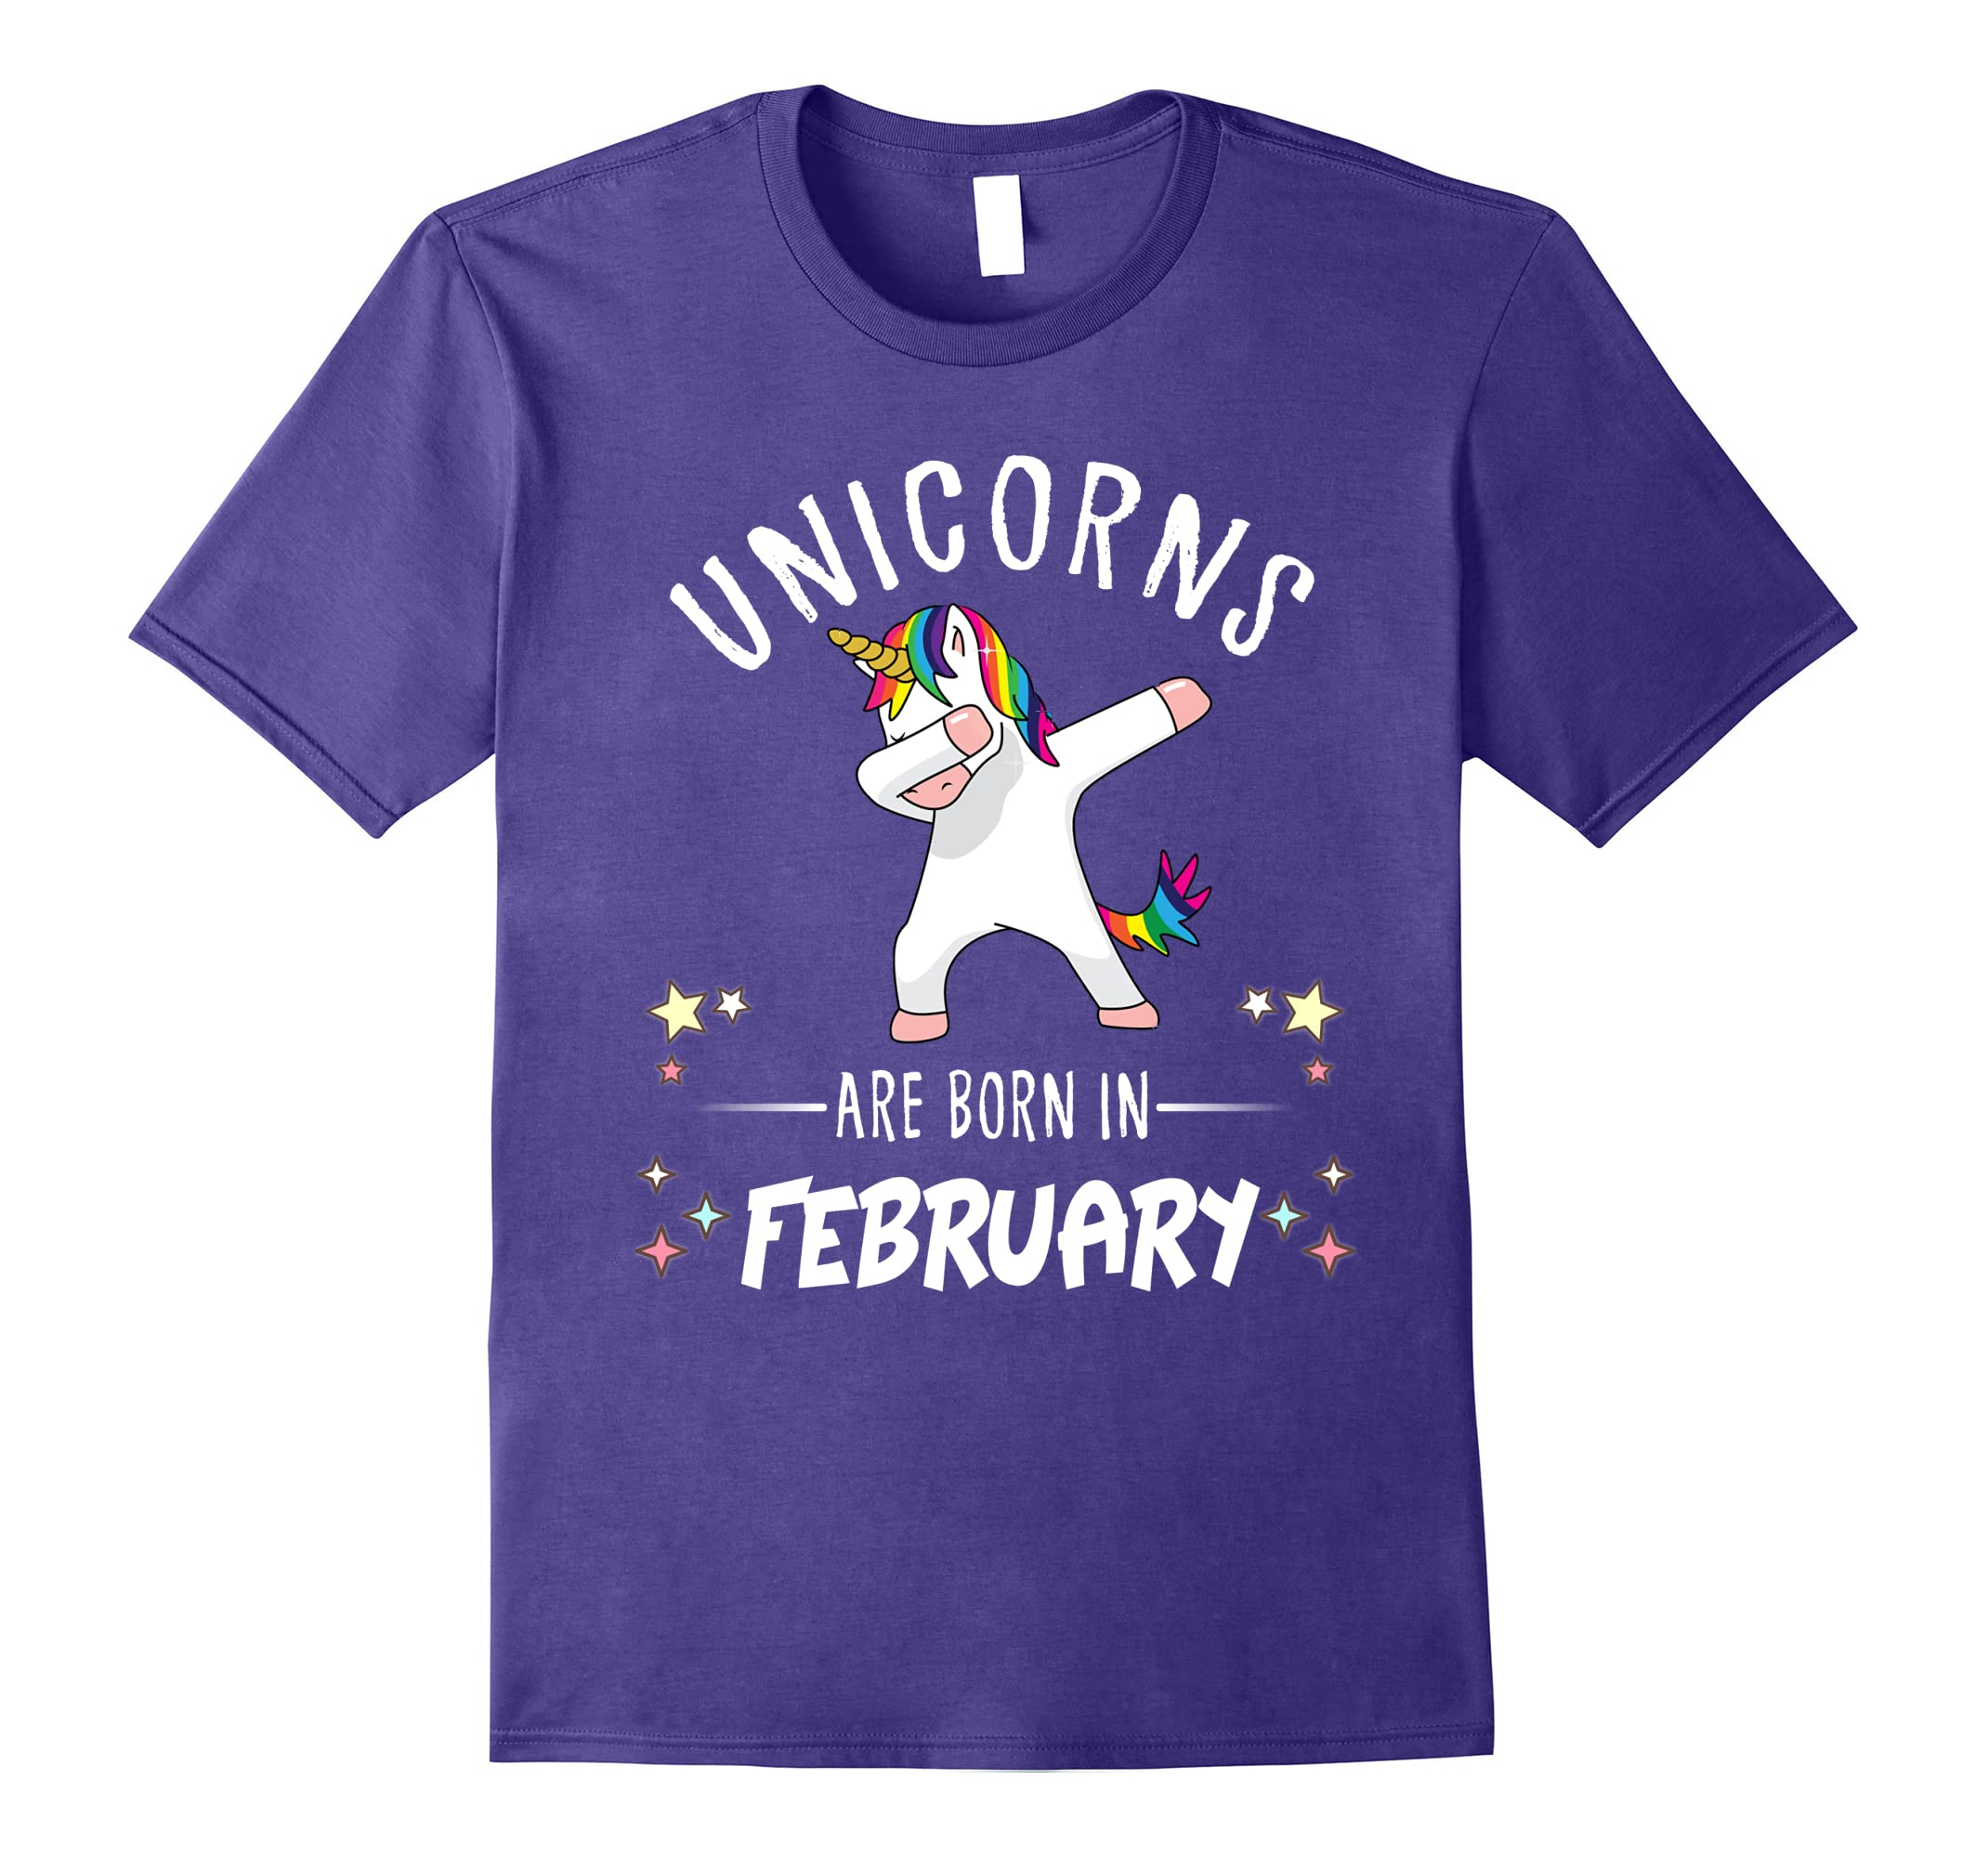 Unicorns are born February Shirt